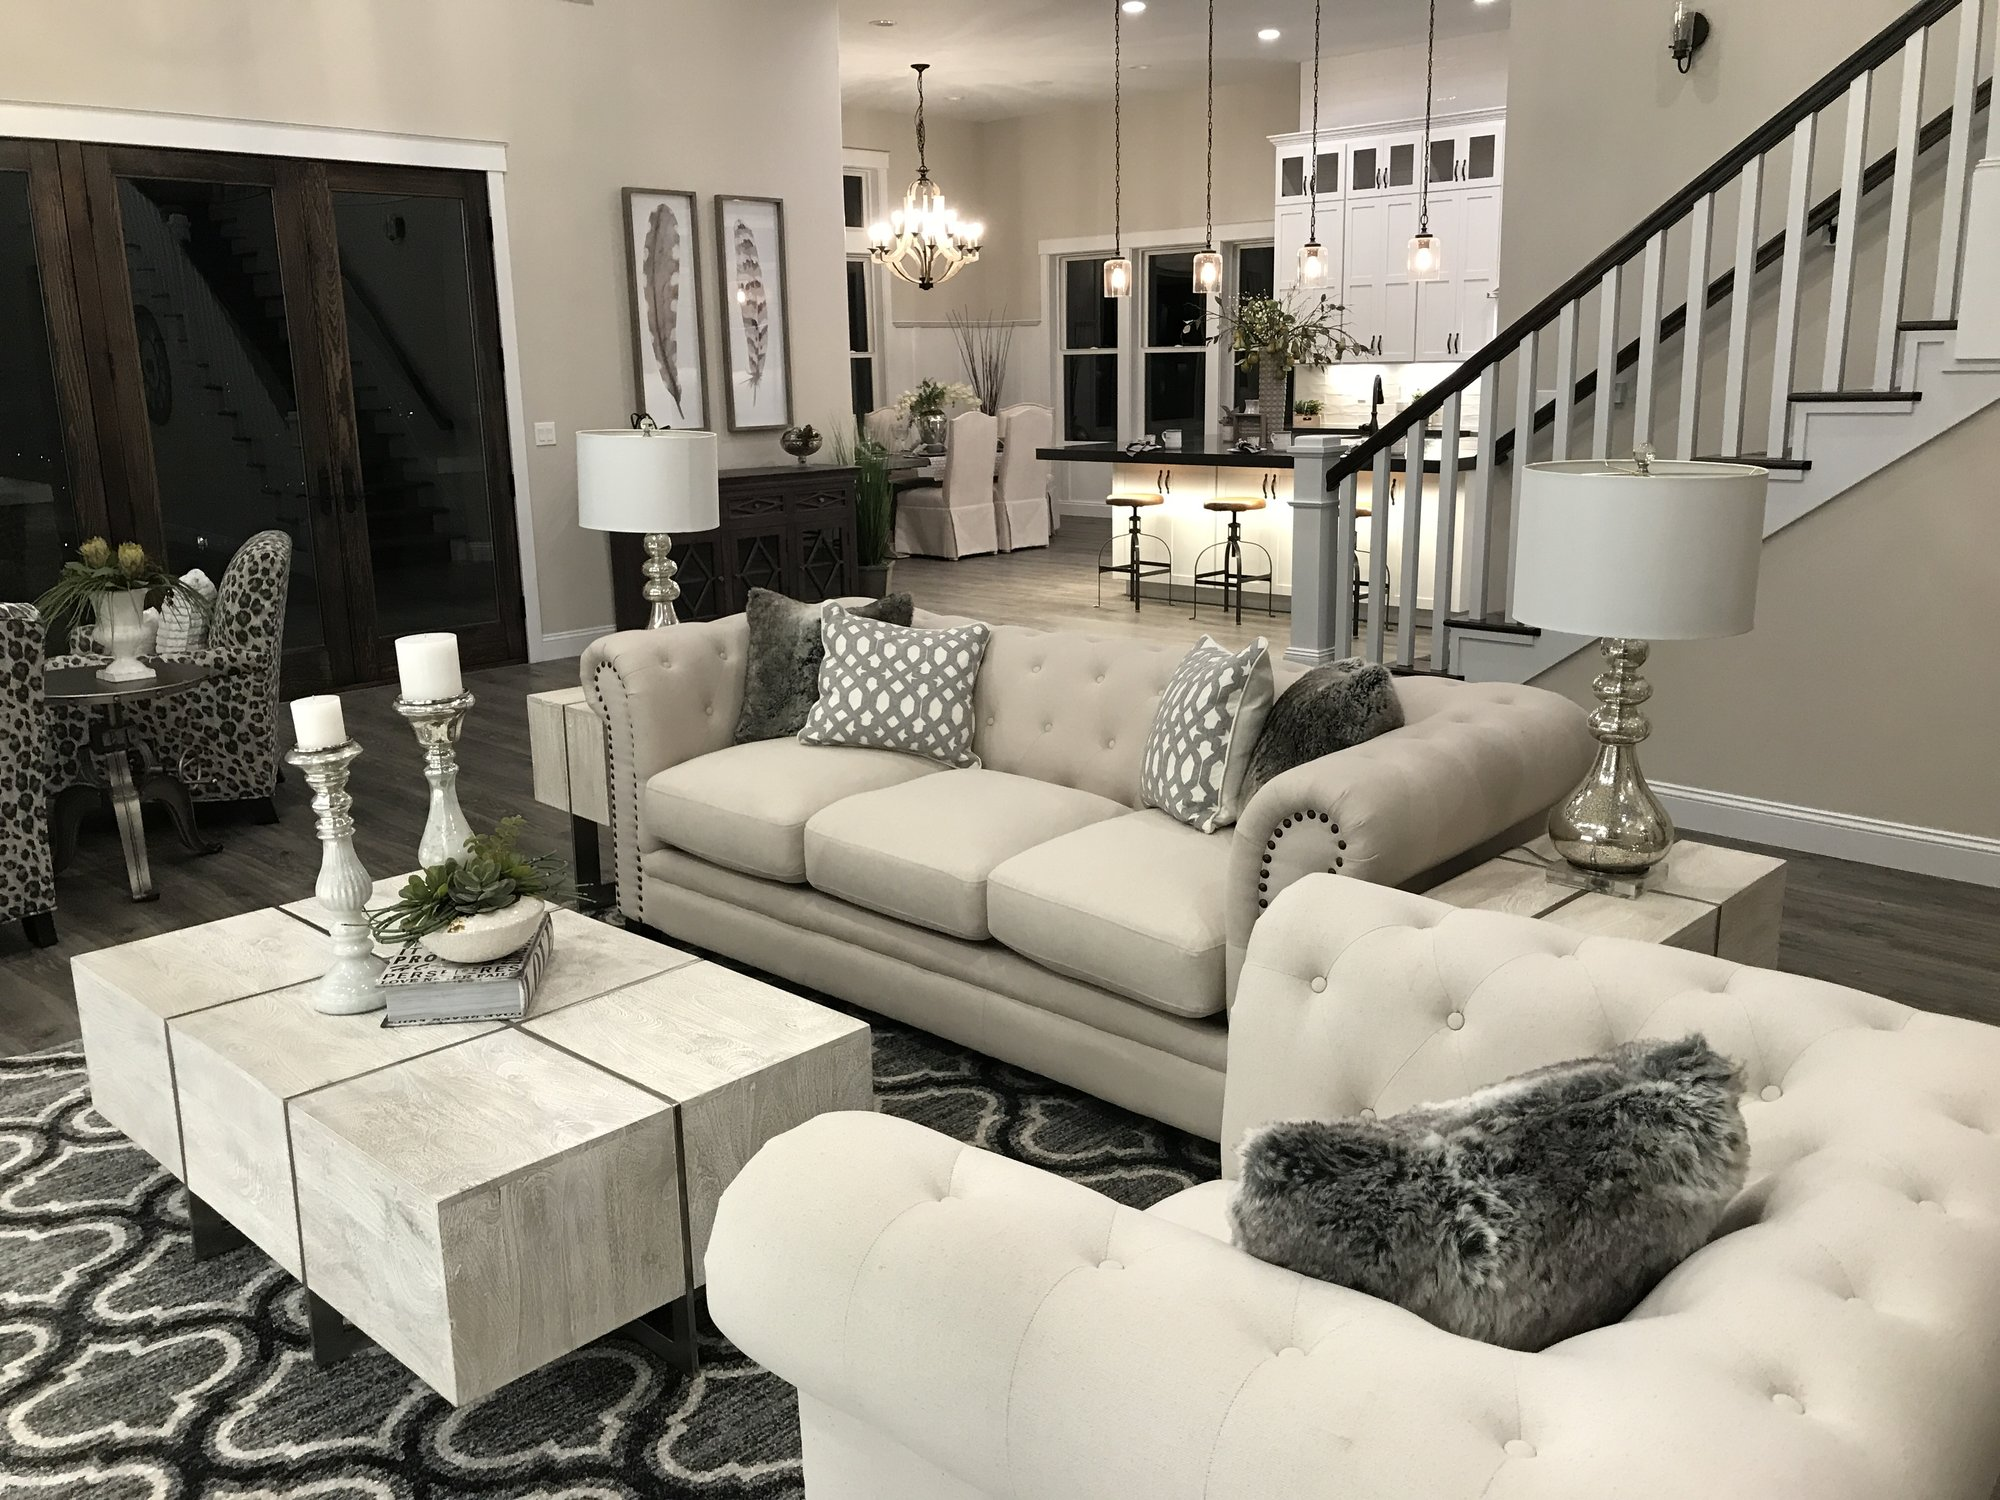 Home Staging Bordeaux the importance of home staging: making the best first impression